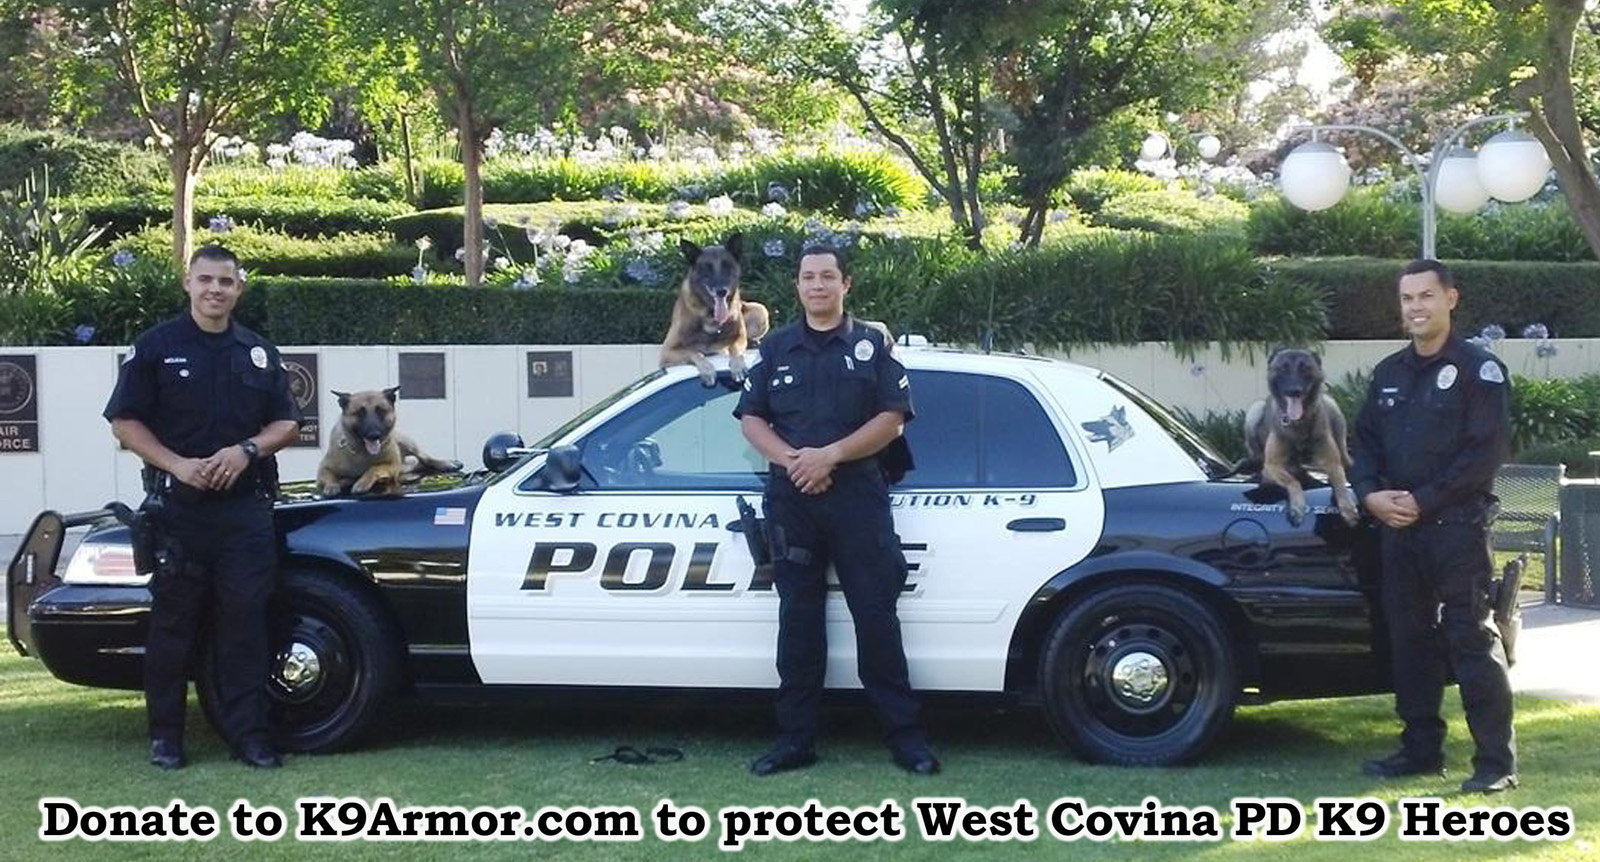 K9 Armor needs donations for West Covina K9 Rec and Cody. We received donations for Robbie & Reiko.